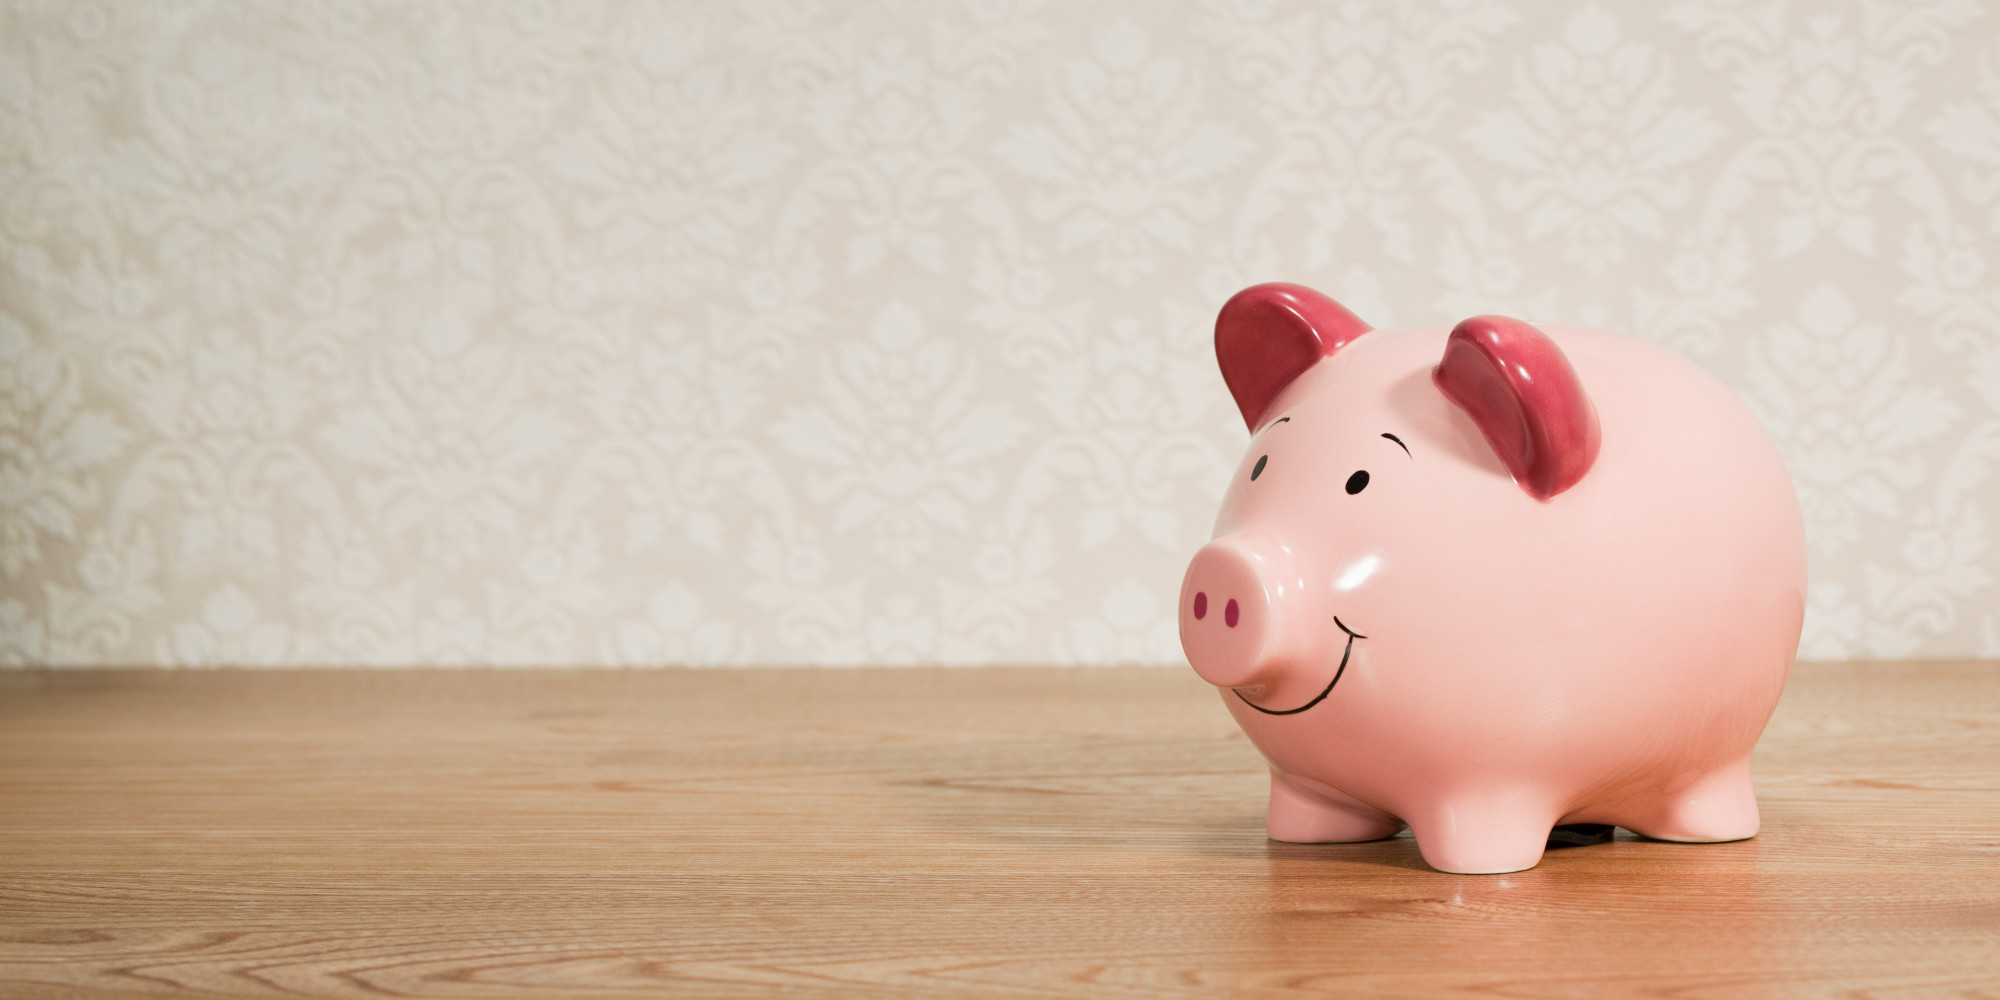 Date a personal finance blogger cait flanders for How to make a piggy bank you can t open